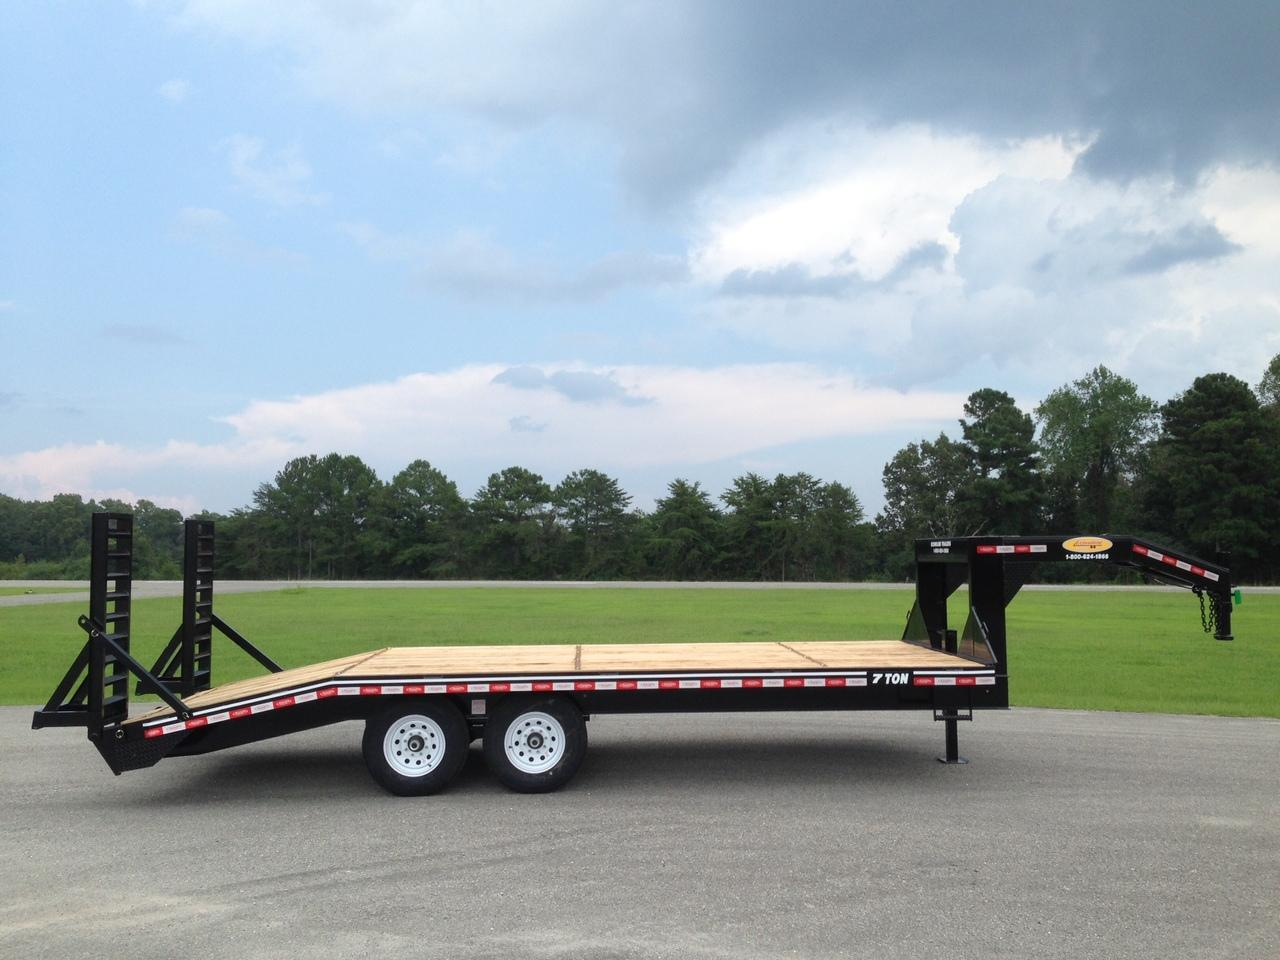 Buy Econoline Gooseneck Trailers At Great Prices Alabama Built Double Car Trailer 24 Foot Flatbed 7 Ton 102 X 21 Deckover Dovetail